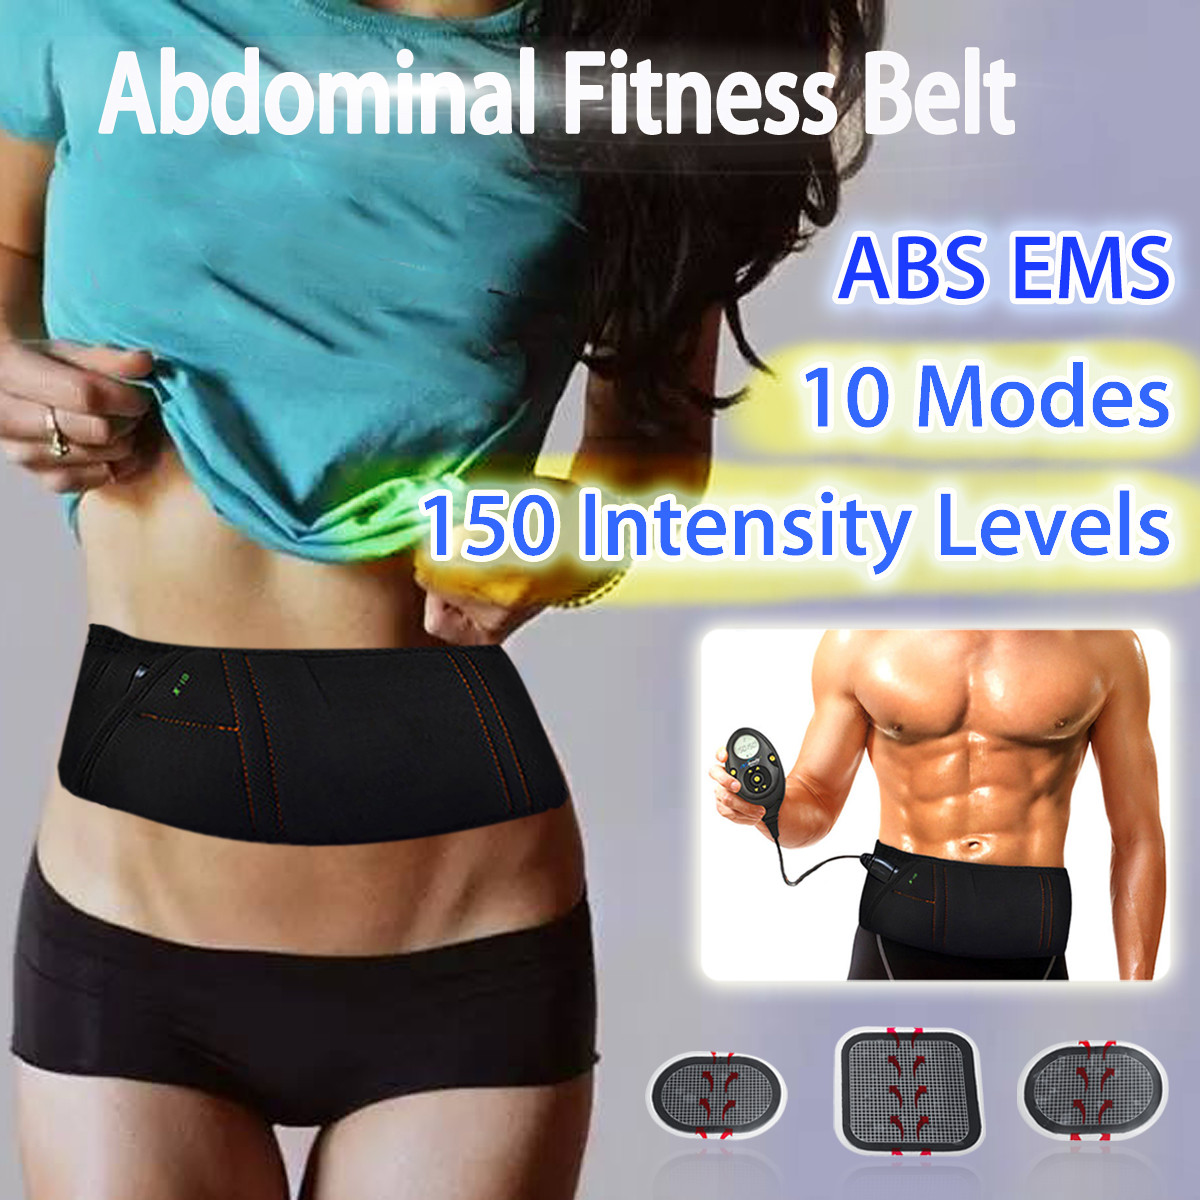 EMS Electric Slimming Belt Abdominal Muscle Lose Weight Fitness Massage Sway Vibration Belly Muscle Waist Trainer Stimulator kifit electric tummy abdominal slimming lose weight waist trainer fat belly burner fitness massage belt health care tool